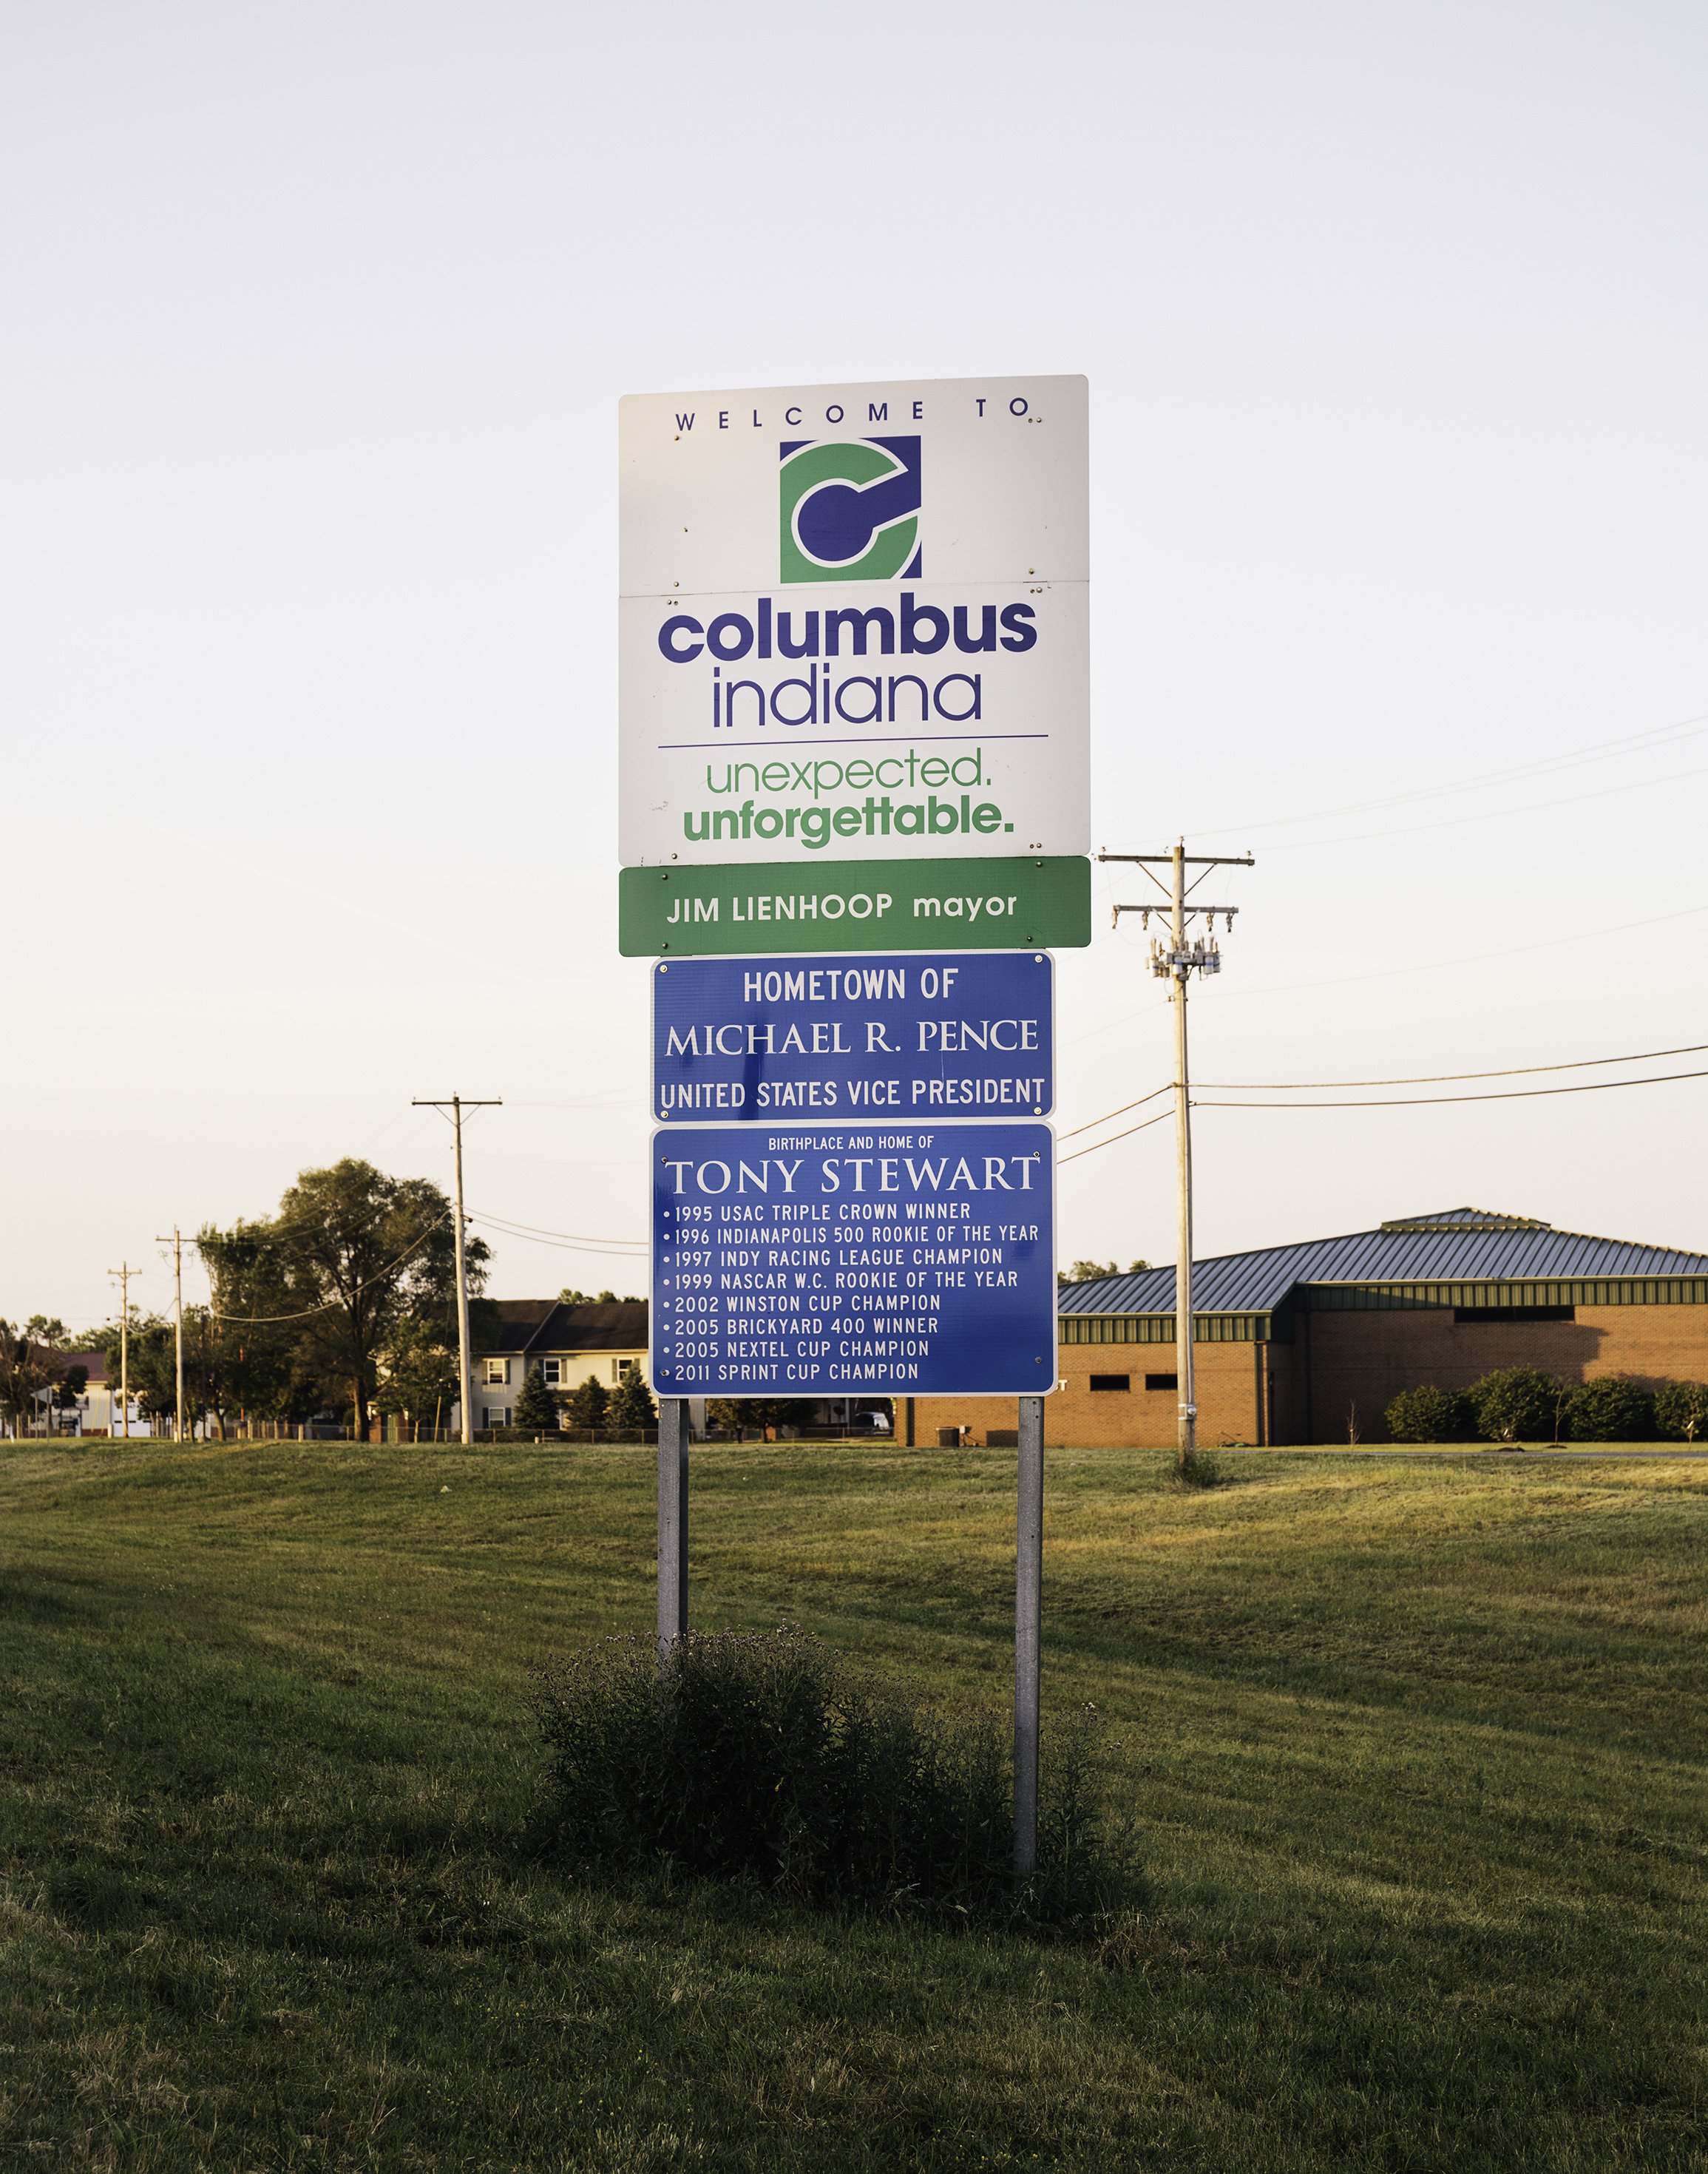 Columbus's New World - Mention the city of Columbus and most will assume that you mean the Ohio metropolis, home to one of the largest universities in the US and with a population close to the seven-digit mark – not the Columbus located in the depths of southern IndianaMonocle EscapistSummer 2017Story by: Ed Stockerphotos: (right) Columbus, home of Michael (as he's known here) Pence. (below) Aerial view of downtown Columbus.